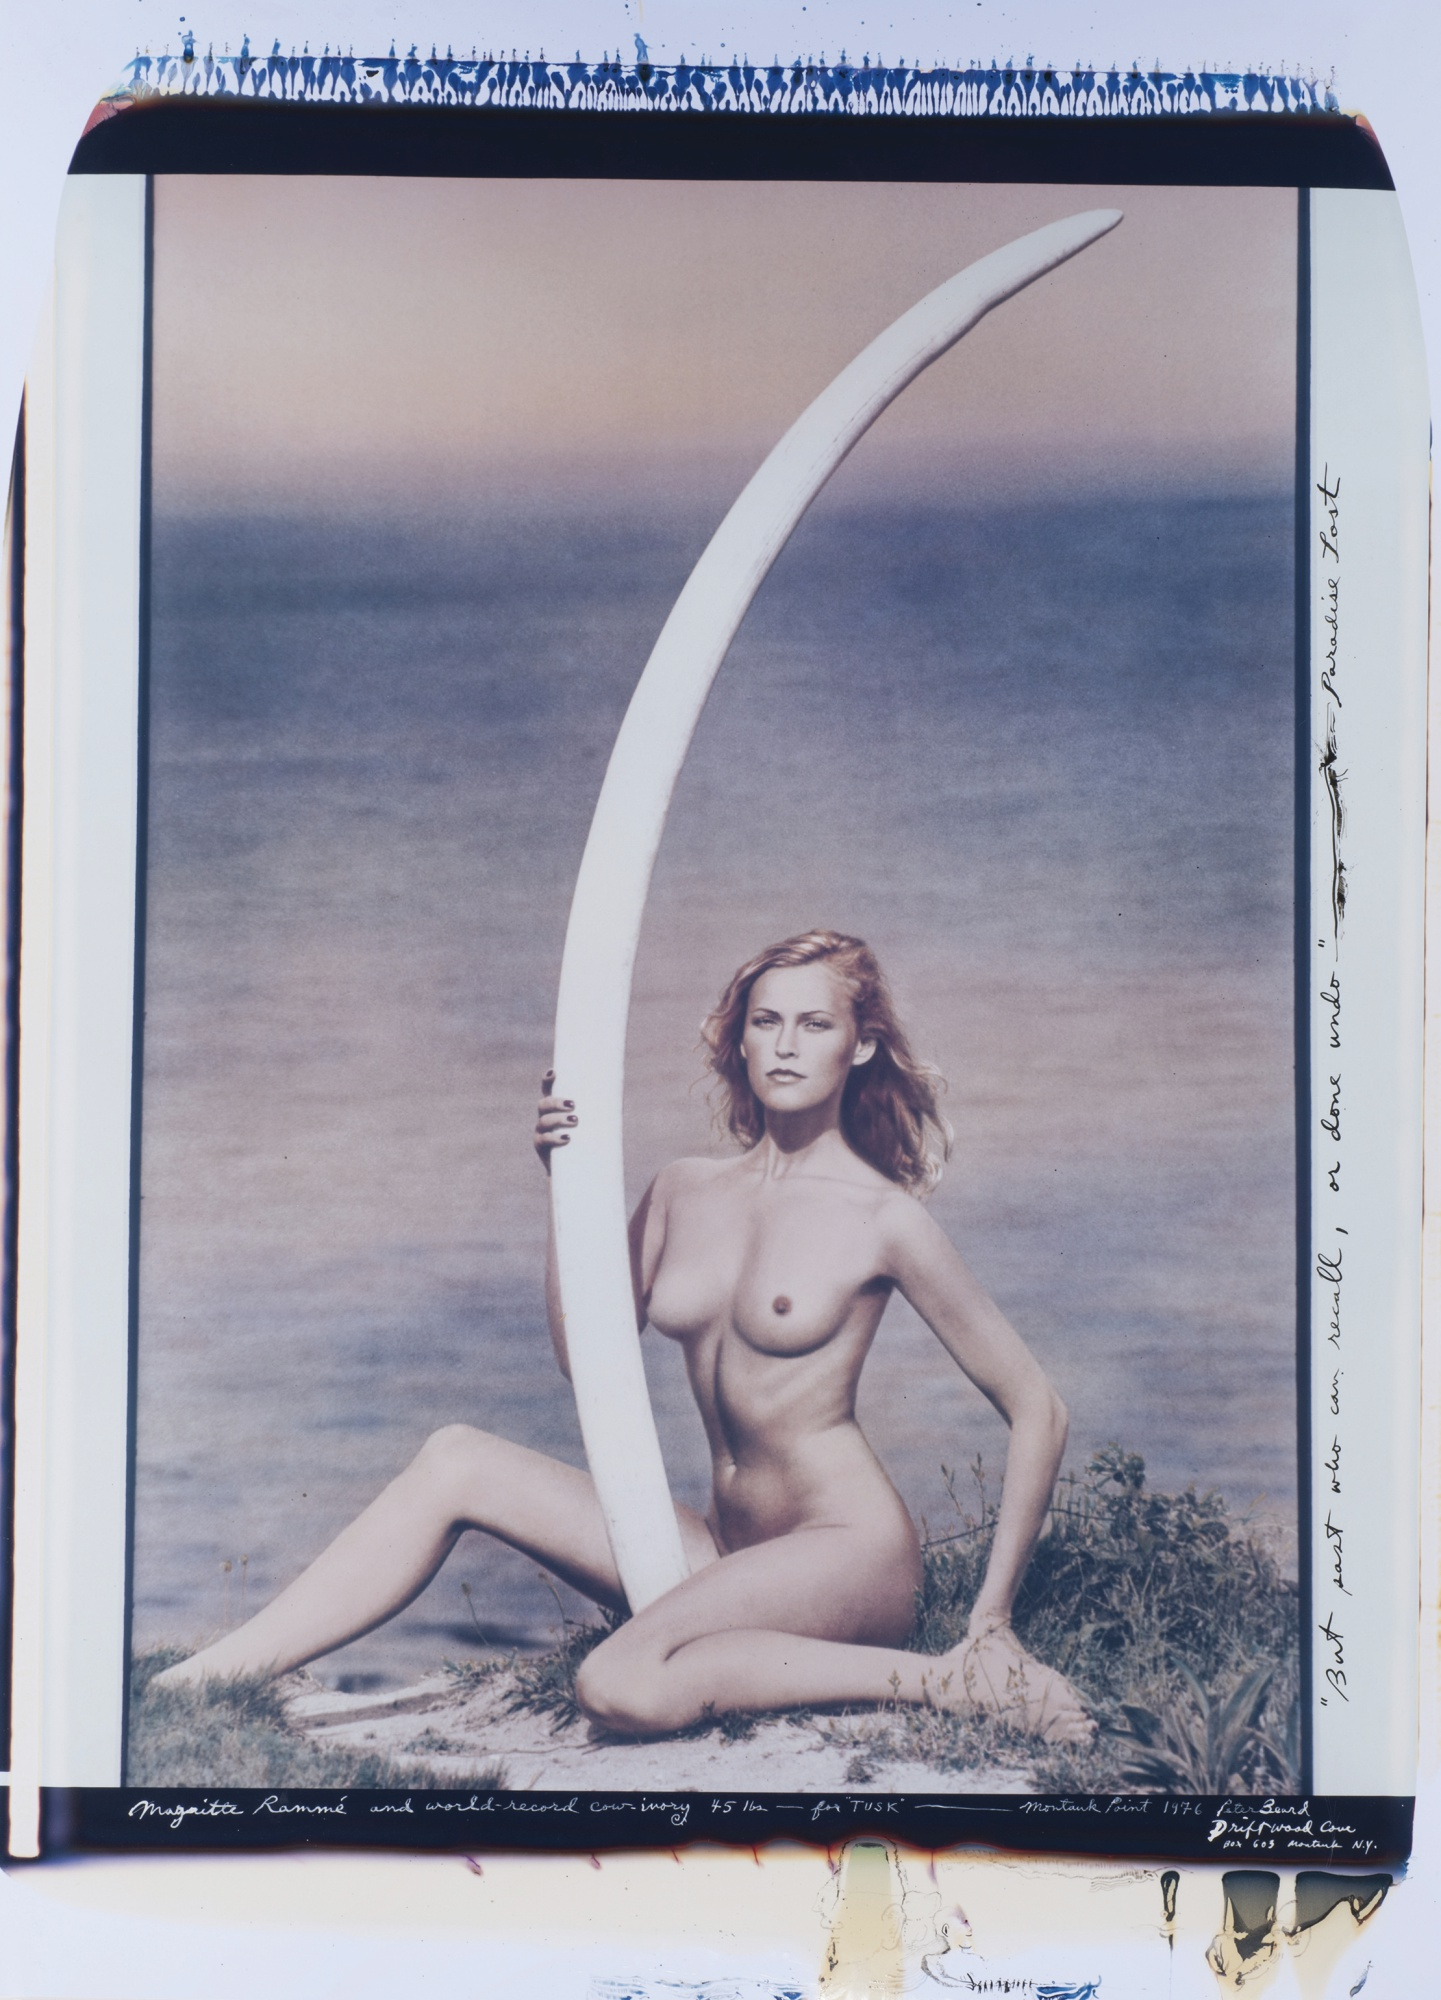 "Peter Beard-Magritte Romme And World Record Cow-Ivory (45 Lbs.) - For ""Tusk"" - Montauk Point-1976"